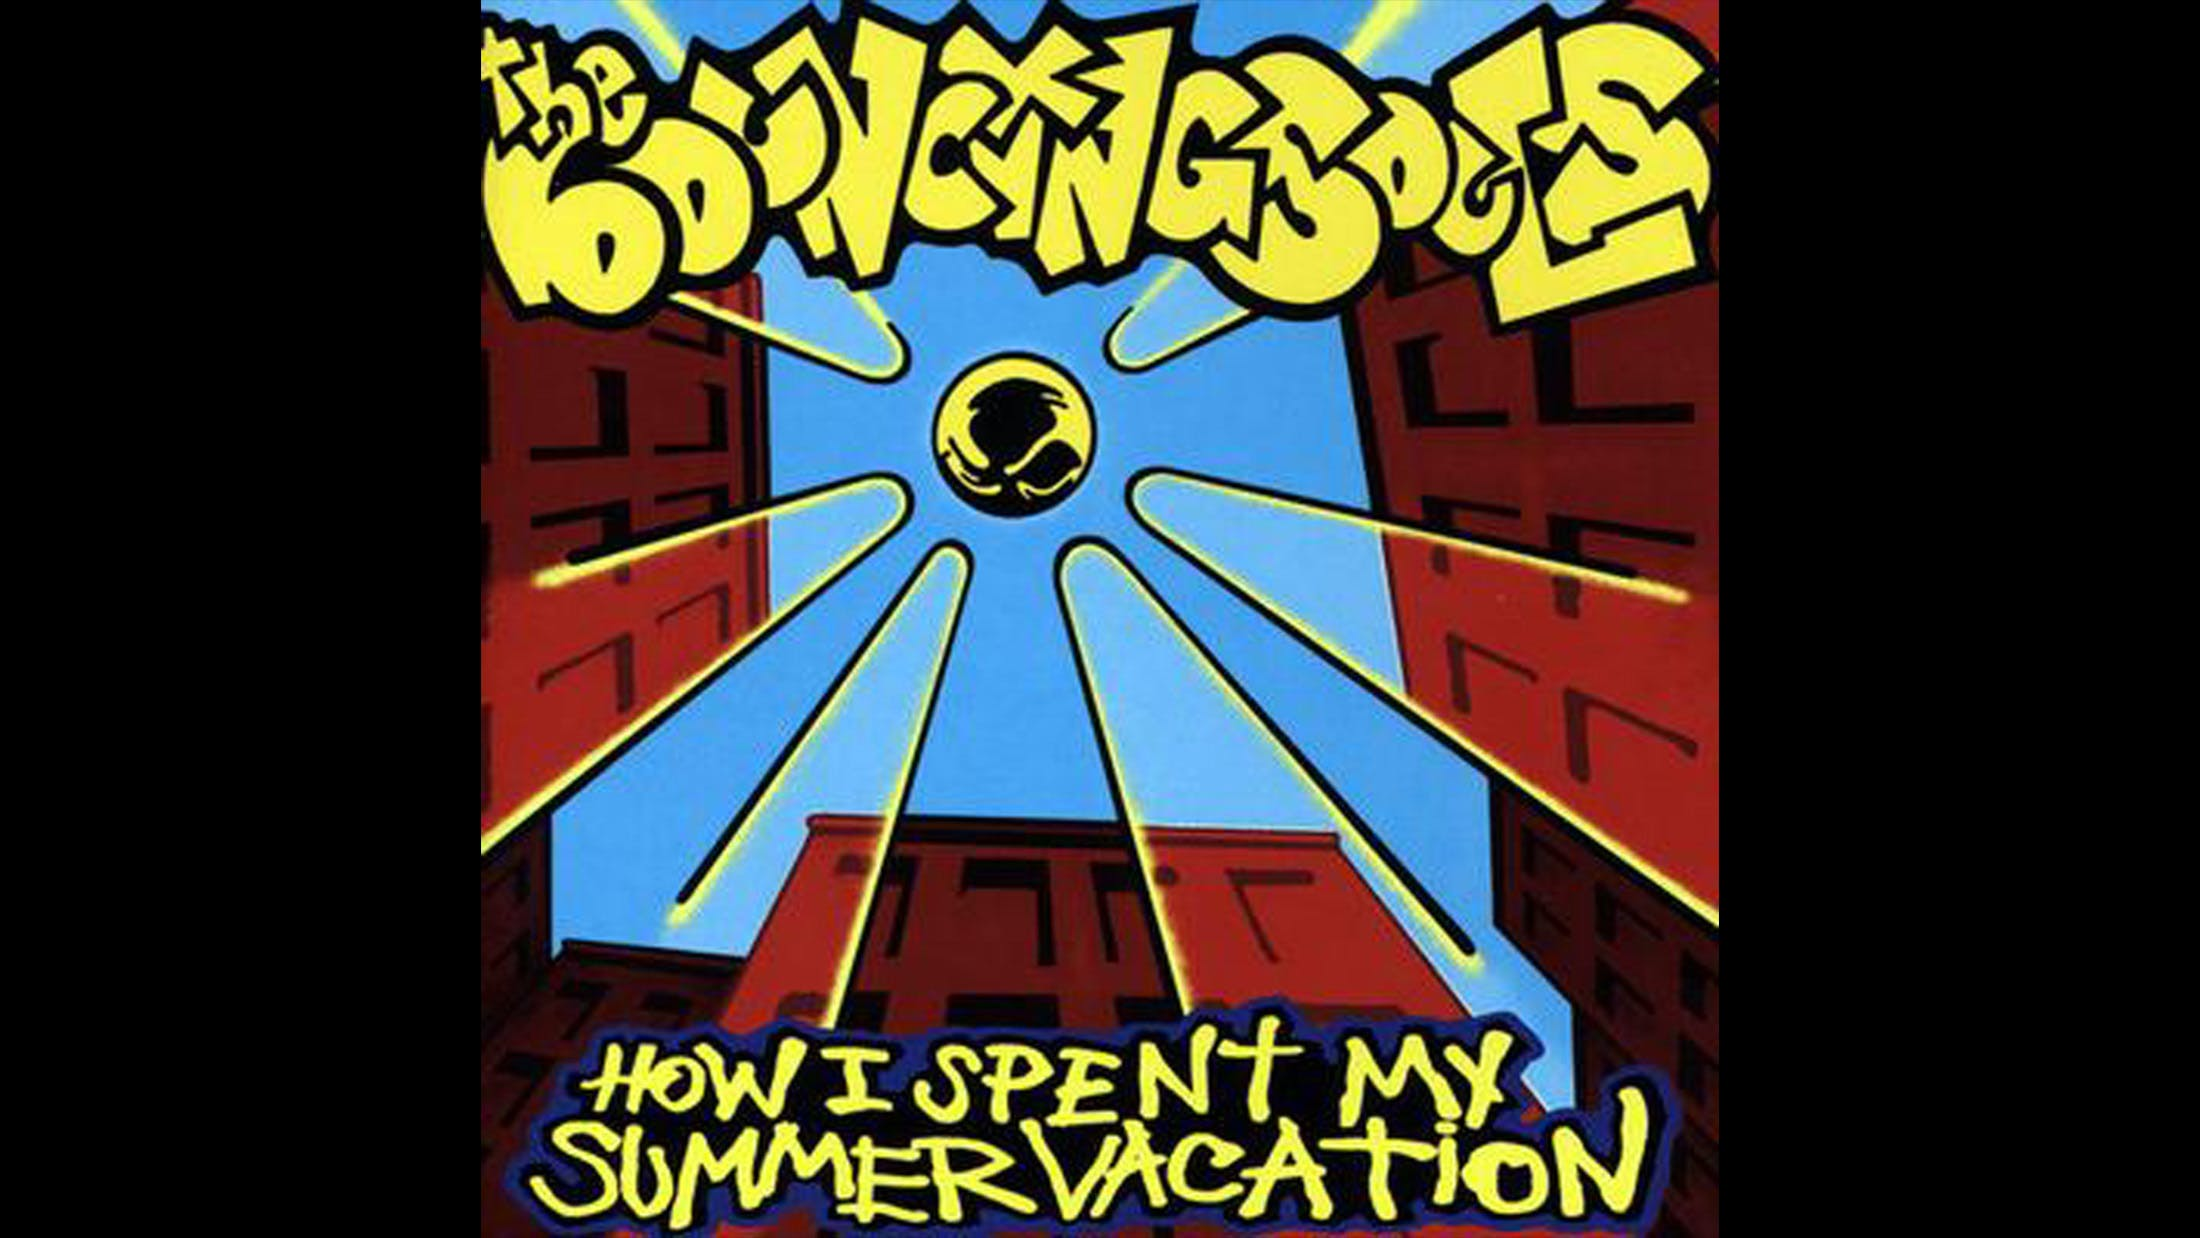 25. The Bouncing Souls - How I Spent My Summer Vacation (2001)